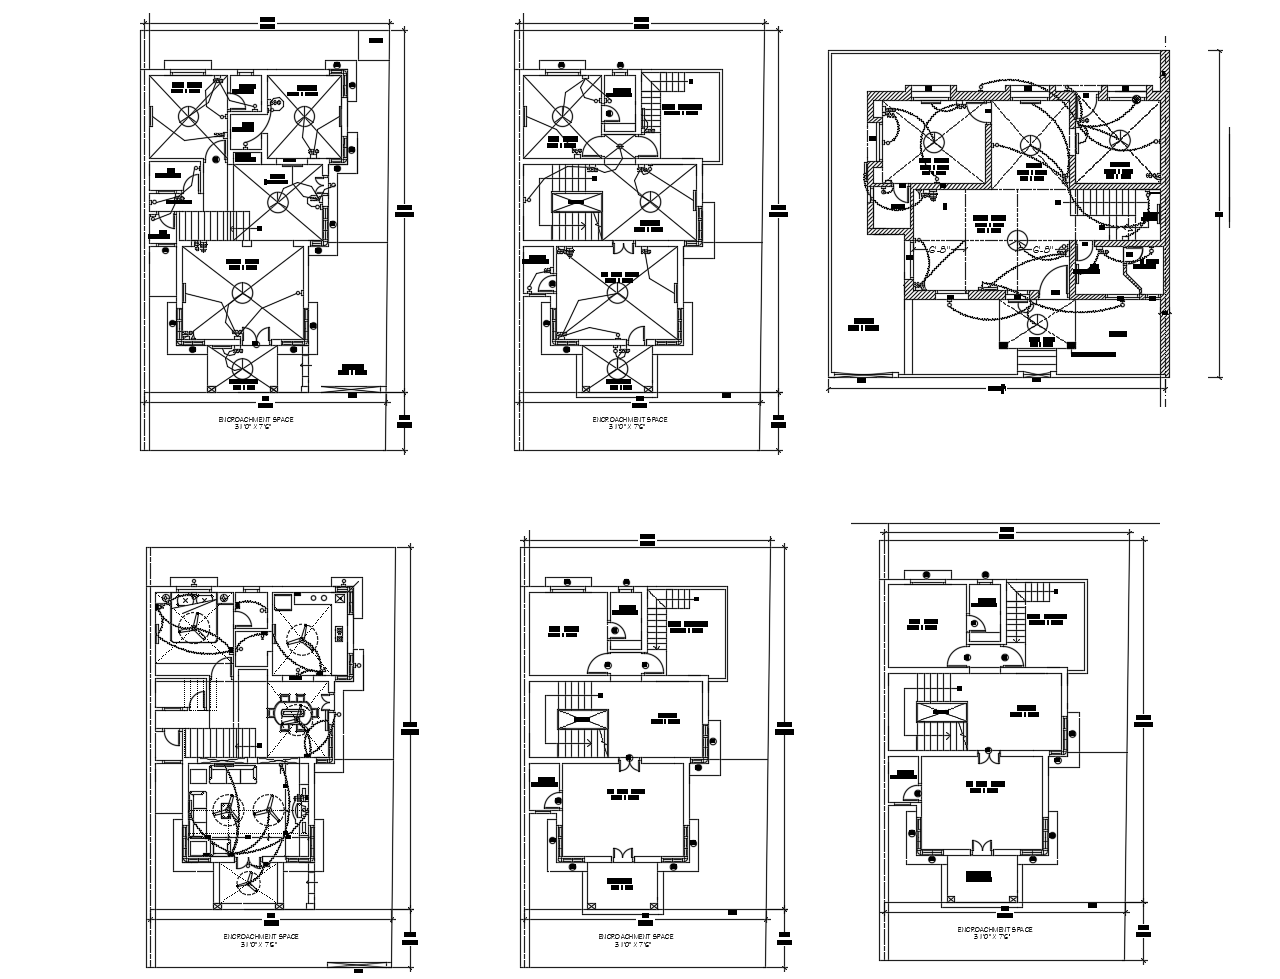 Electrical Layout Of Residential Layout